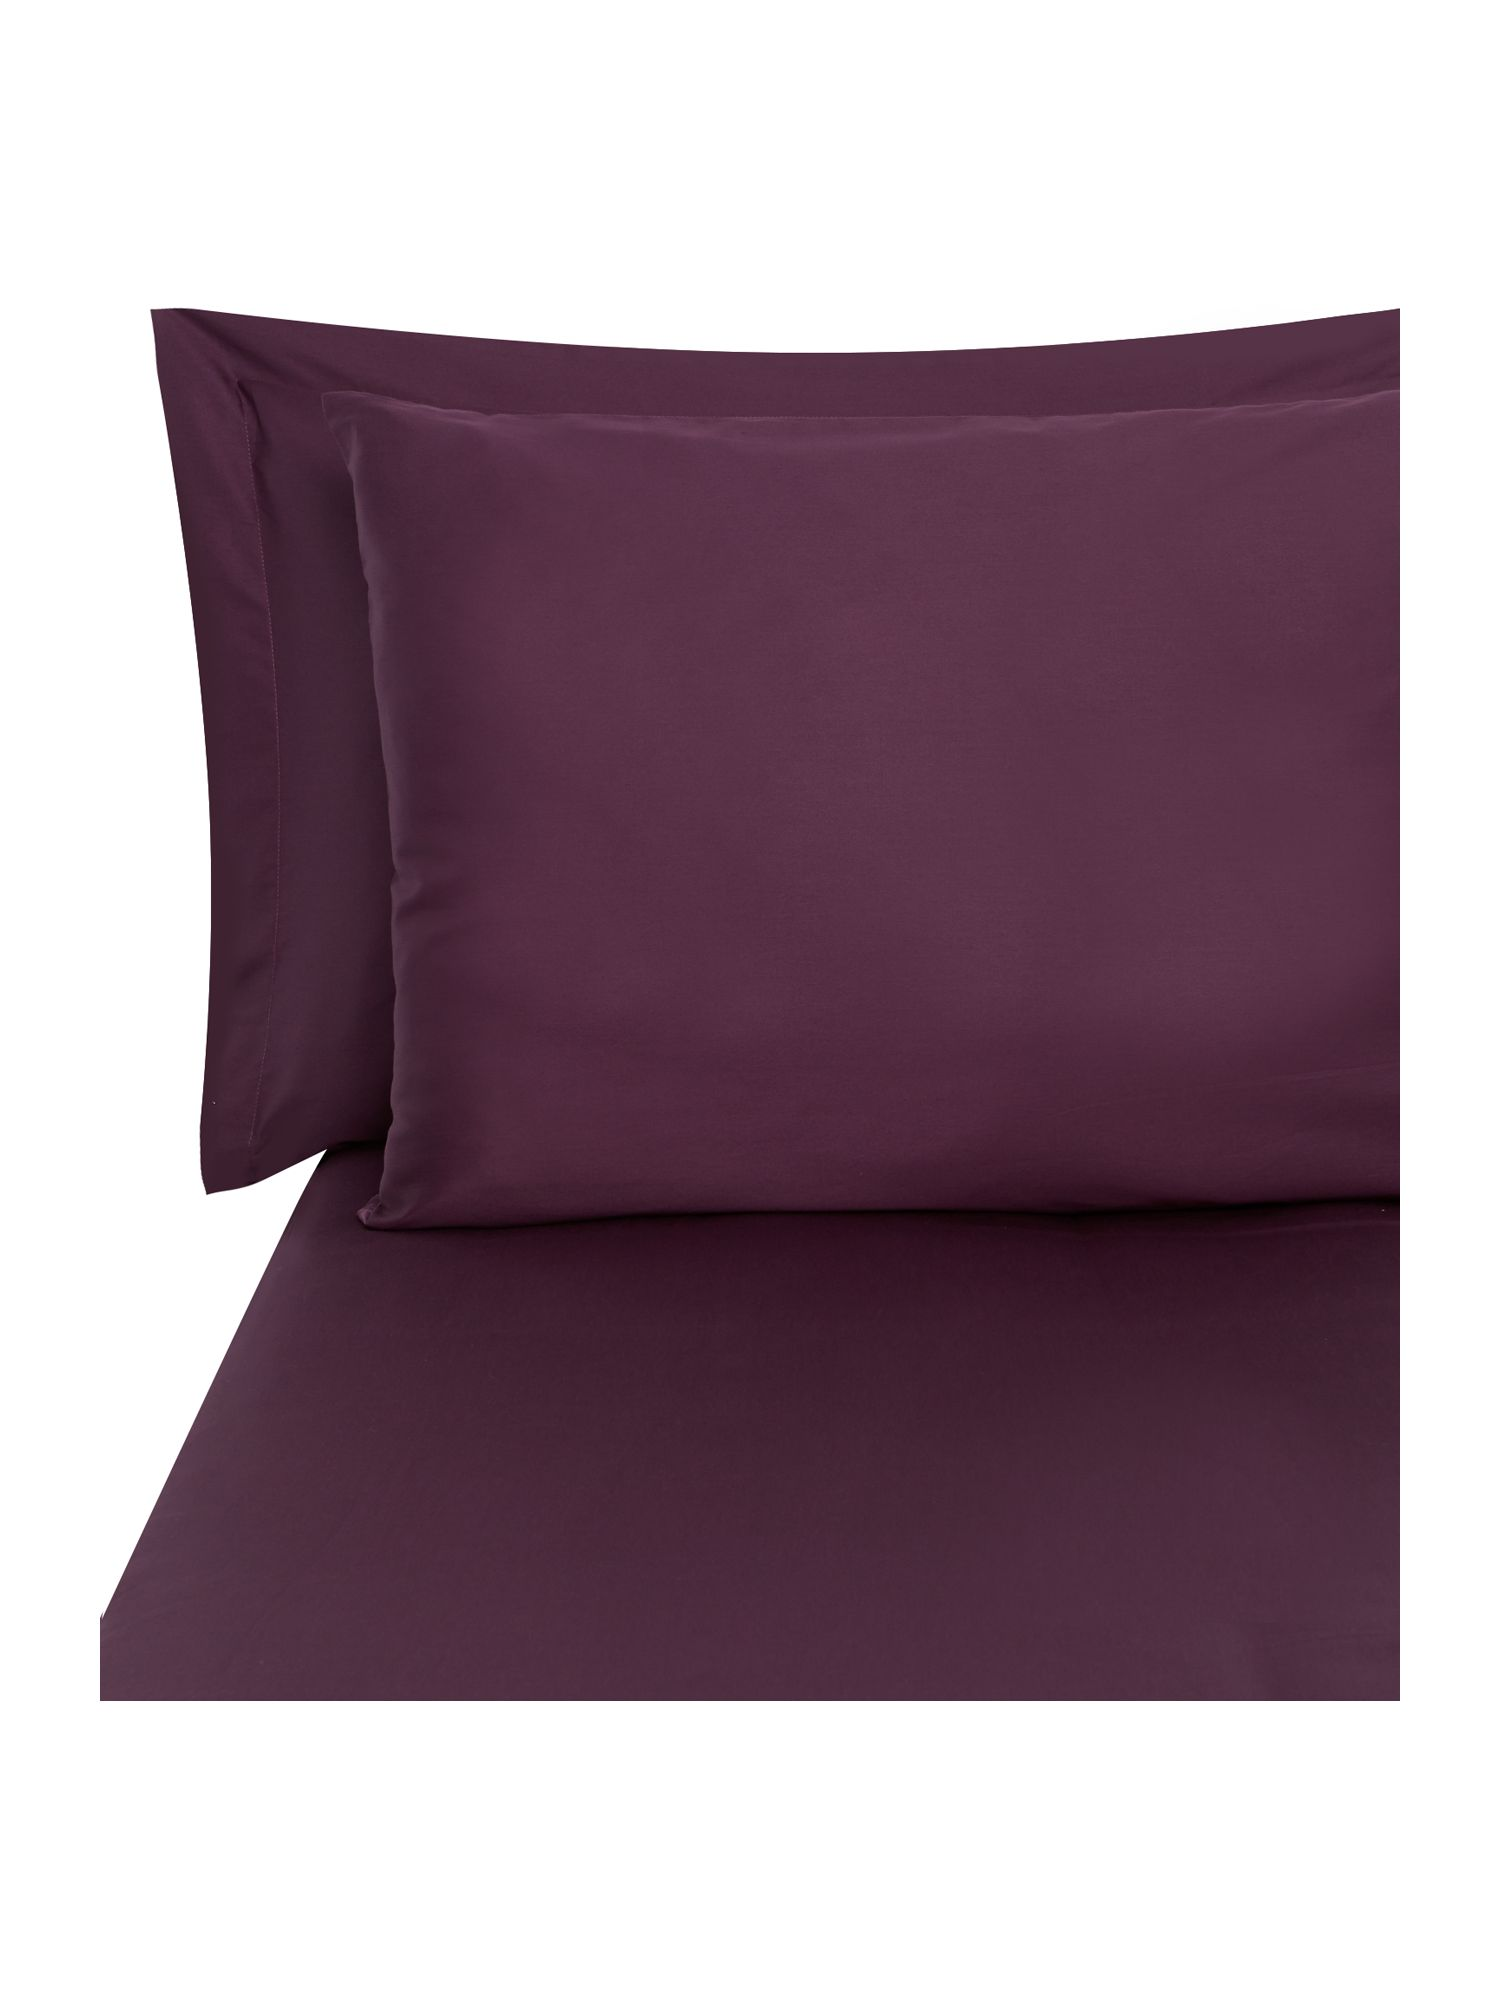 Amethyst fitted sheet double